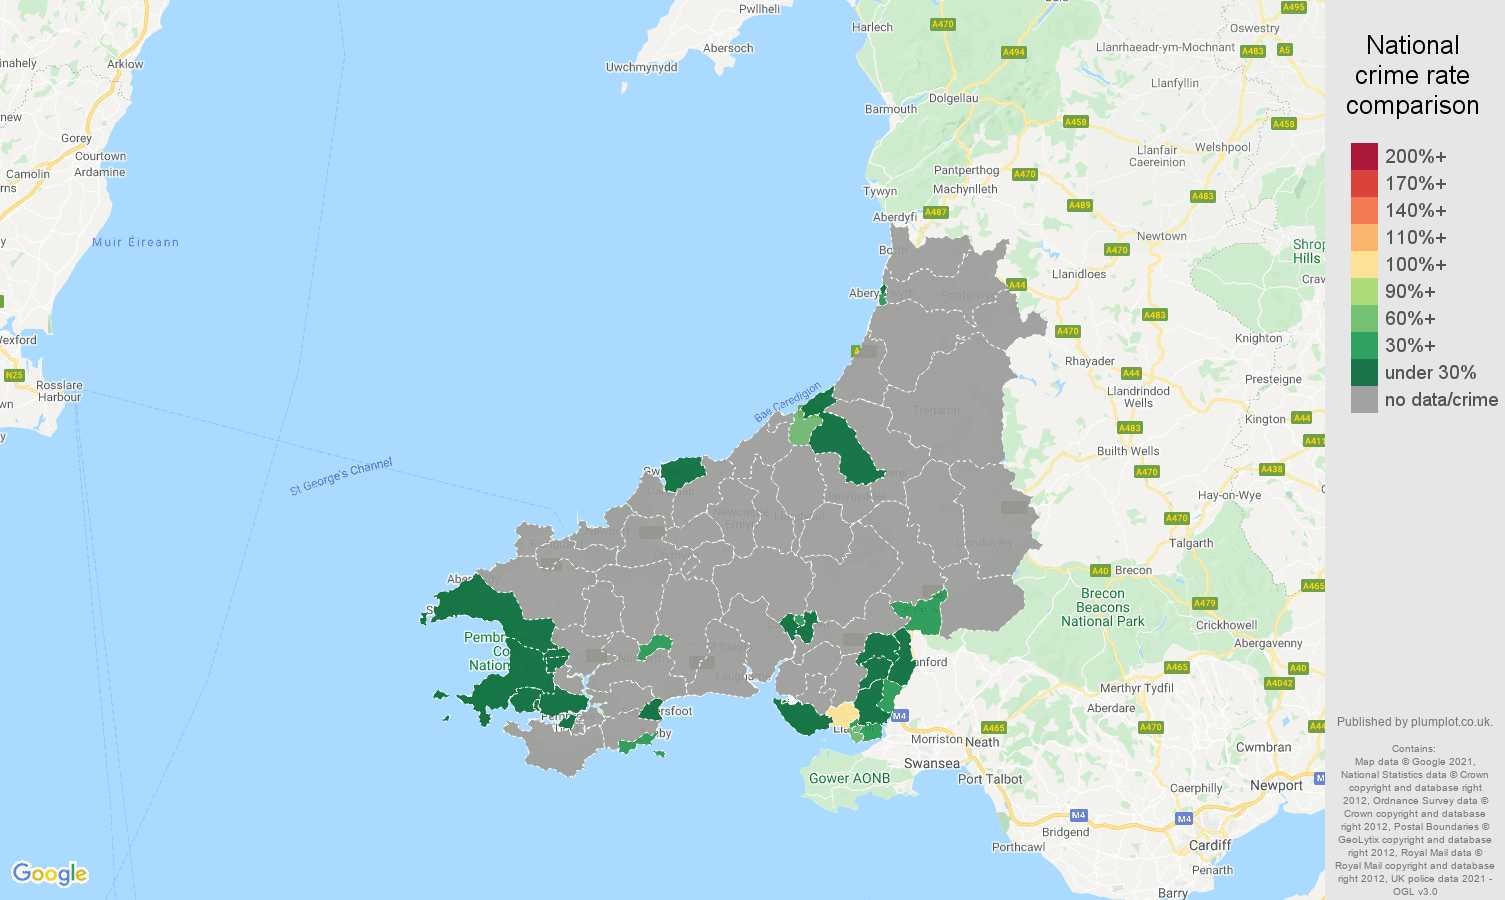 Dyfed bicycle theft crime rate comparison map